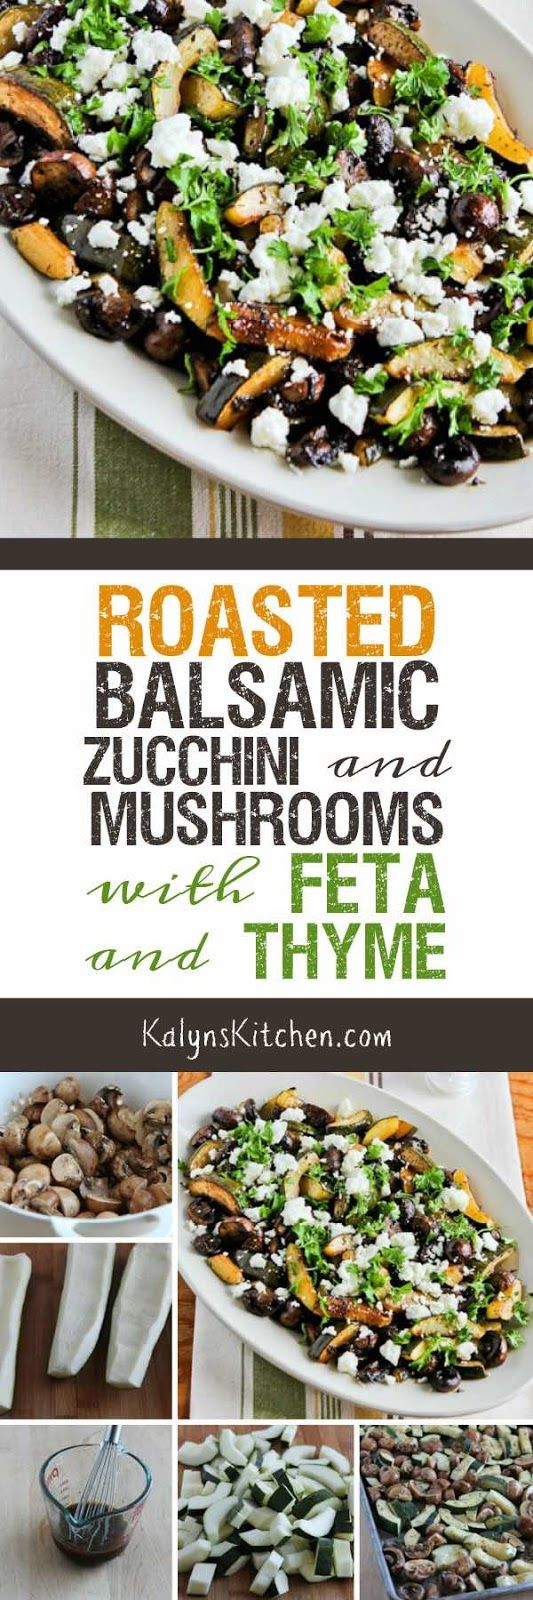 This recipe for Roasted Balsamic Zucchini and Mushrooms with Feta and Thyme is so delicious that it made family history when my brother-in-law had seconds on vegetables! And this tasty way to cook zucchini is low-carb, gluten-free, meatless, and South Beach Diet Phase One. [found on KalynsKitchen.com]: